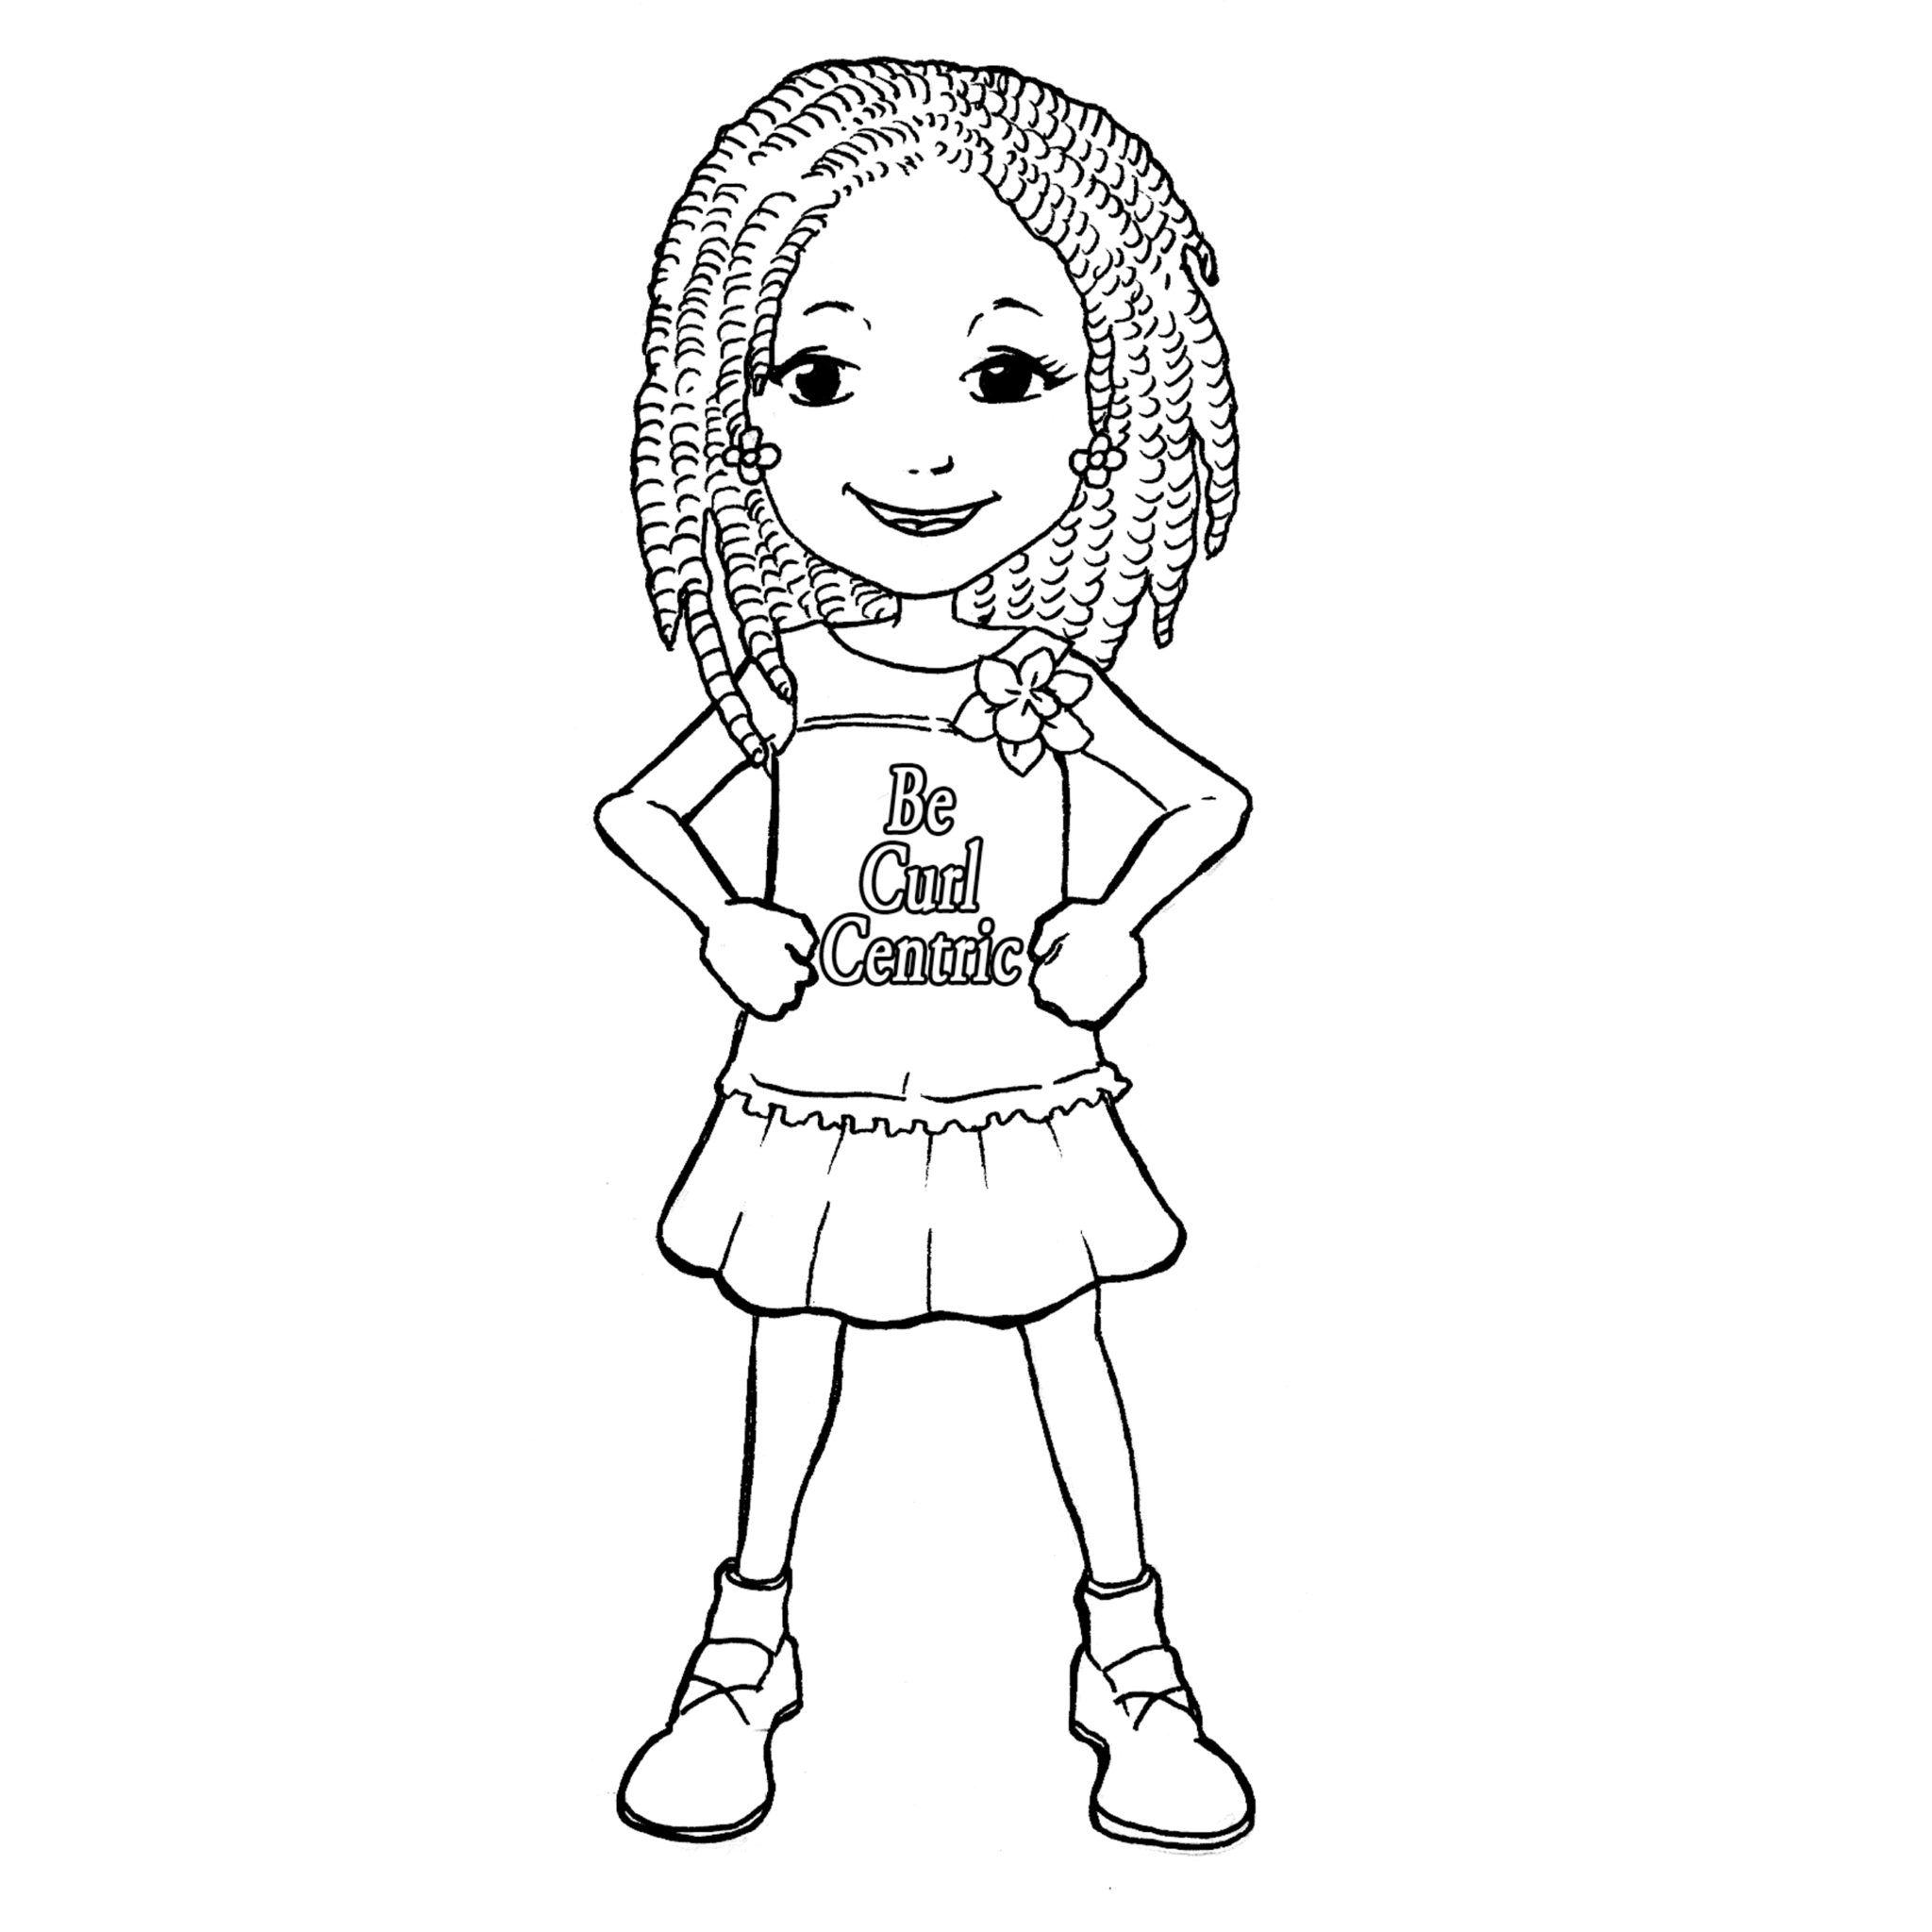 coloring pages of a girl cute girl coloring pages to download and print for free of a girl coloring pages